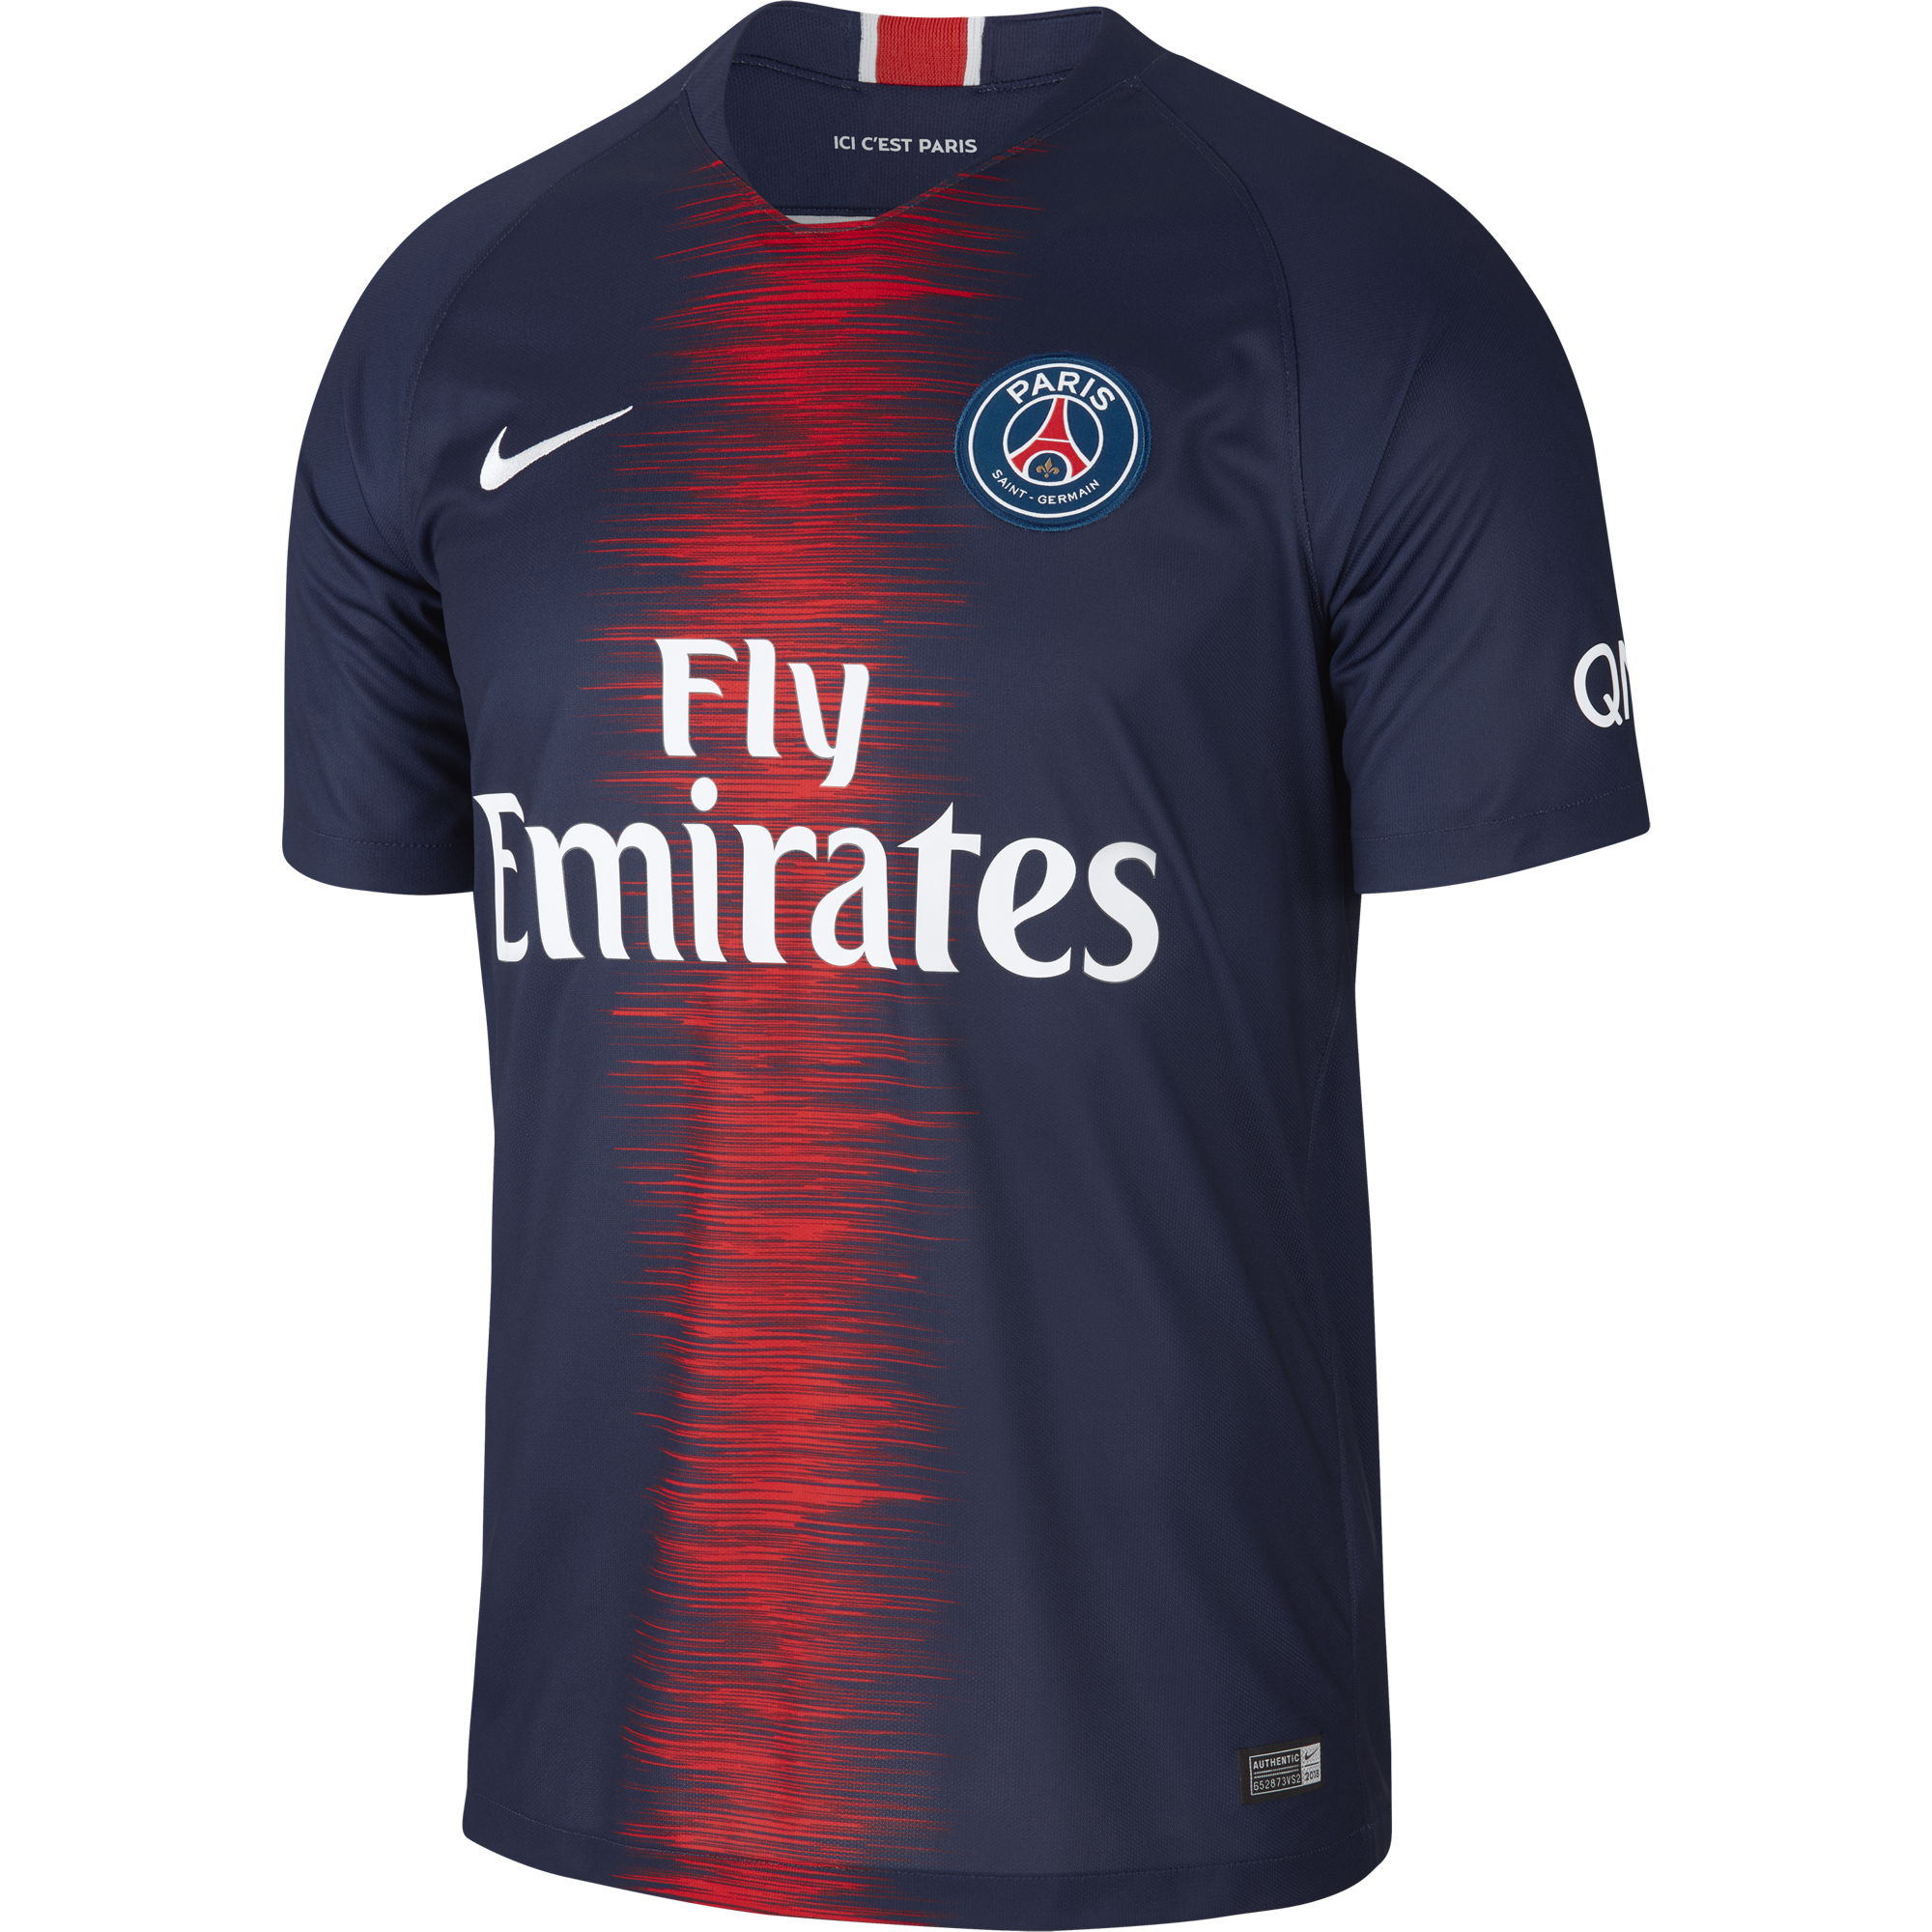 360360e7b469ee Paris Saint Germain 18 19 Home Jersey - Adult – Juggles Football Culture